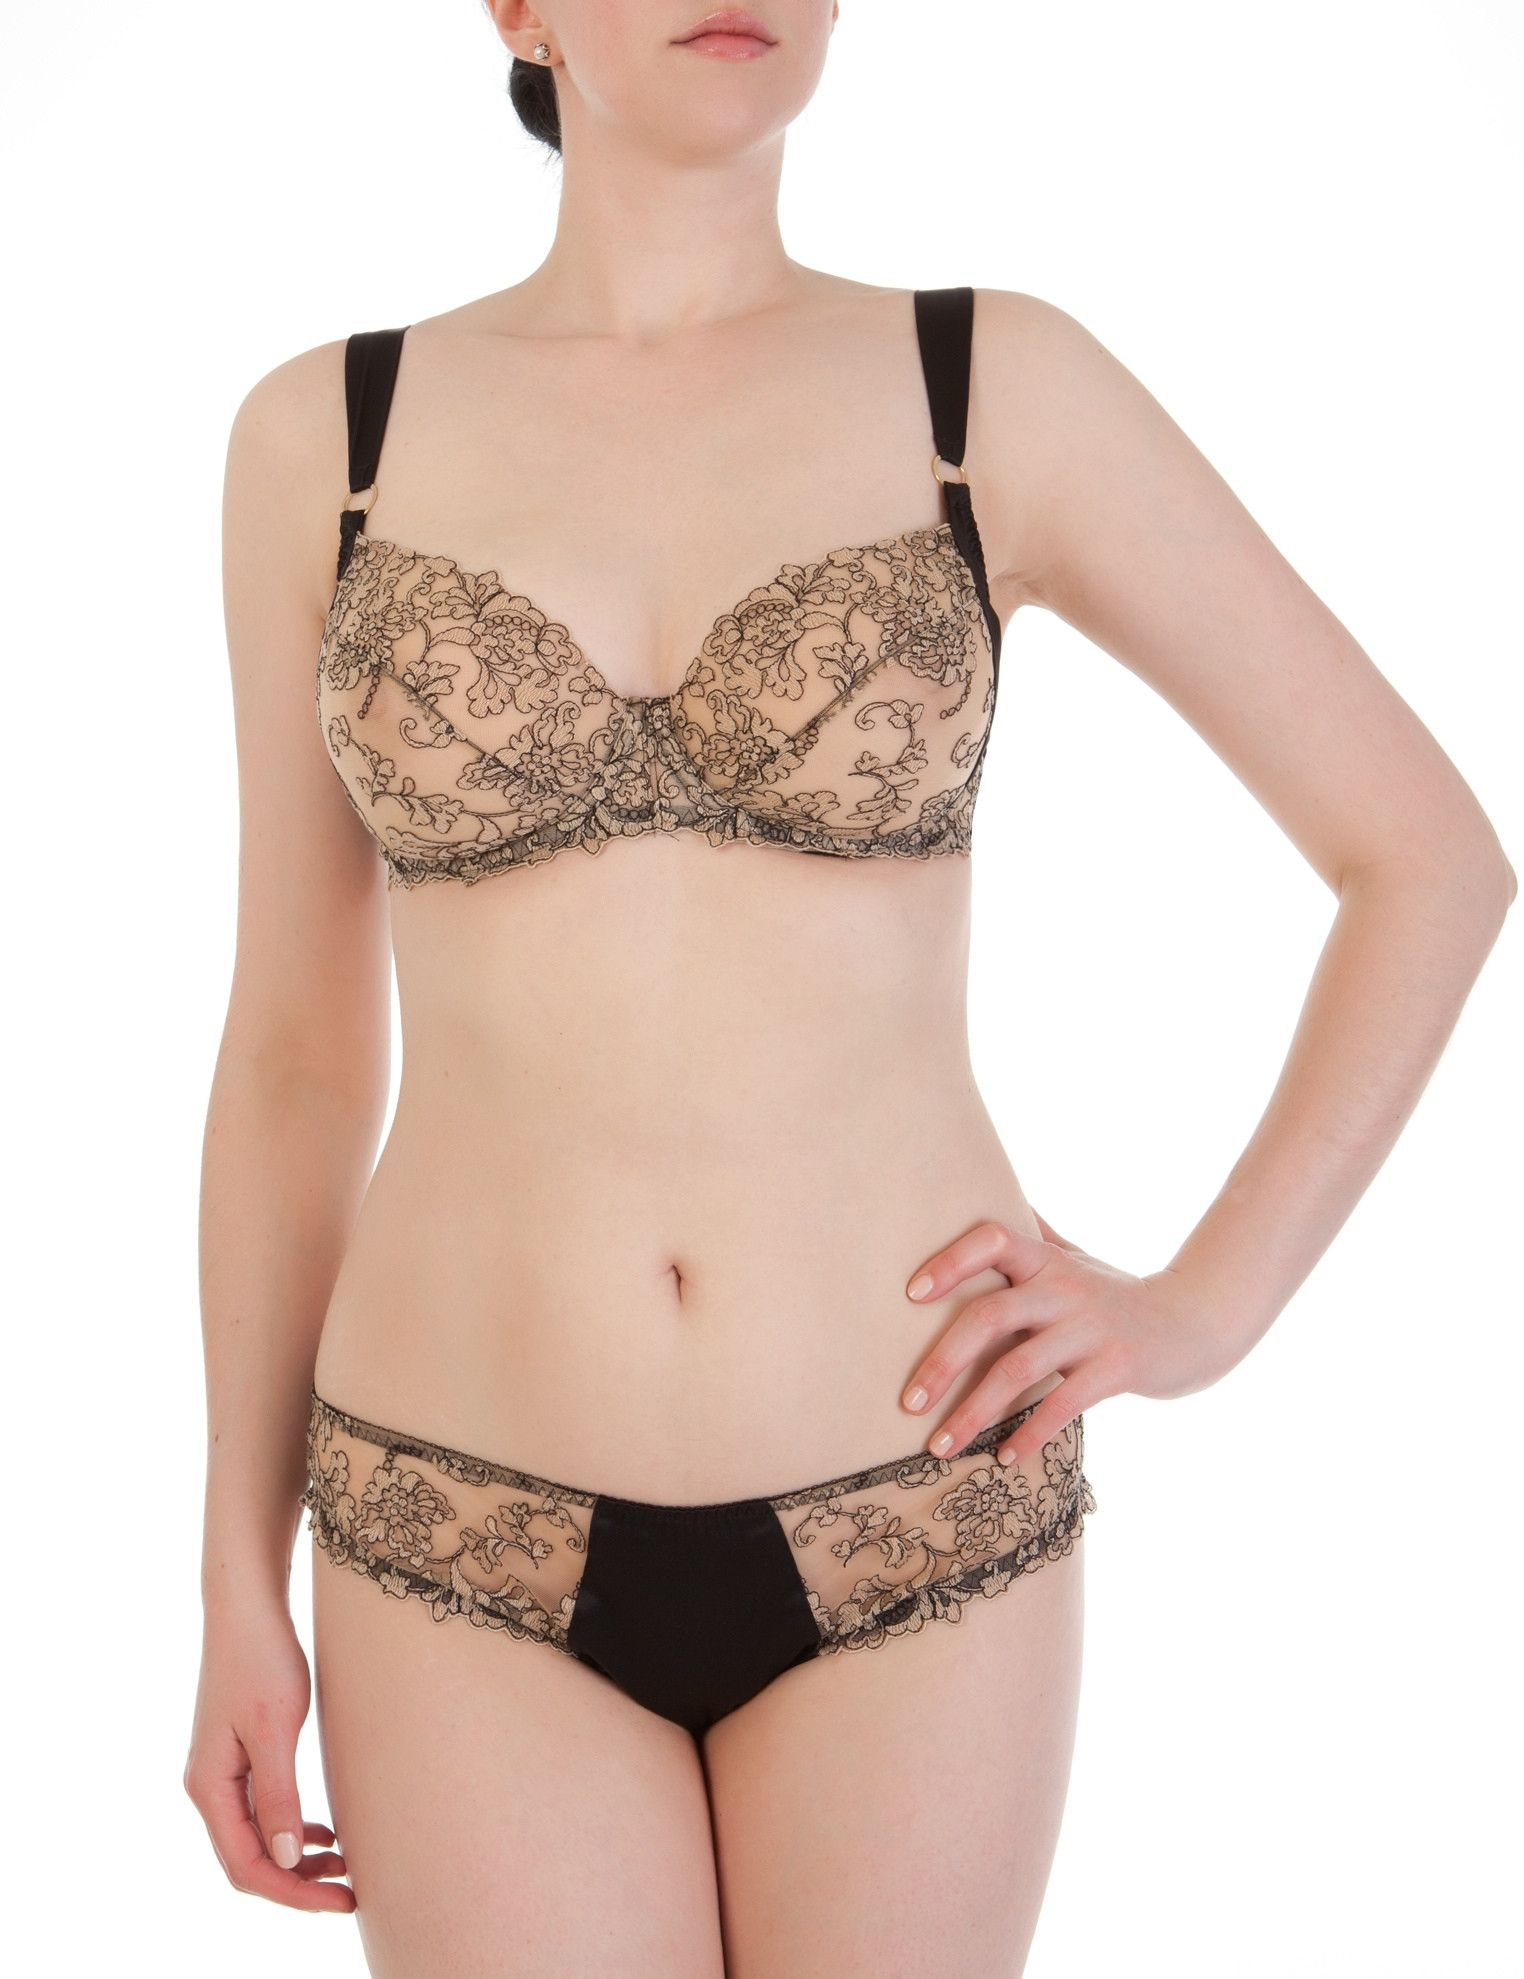 6b7e4a85f3e73 Harlow and Fox Isabelle luxury full bust bra set